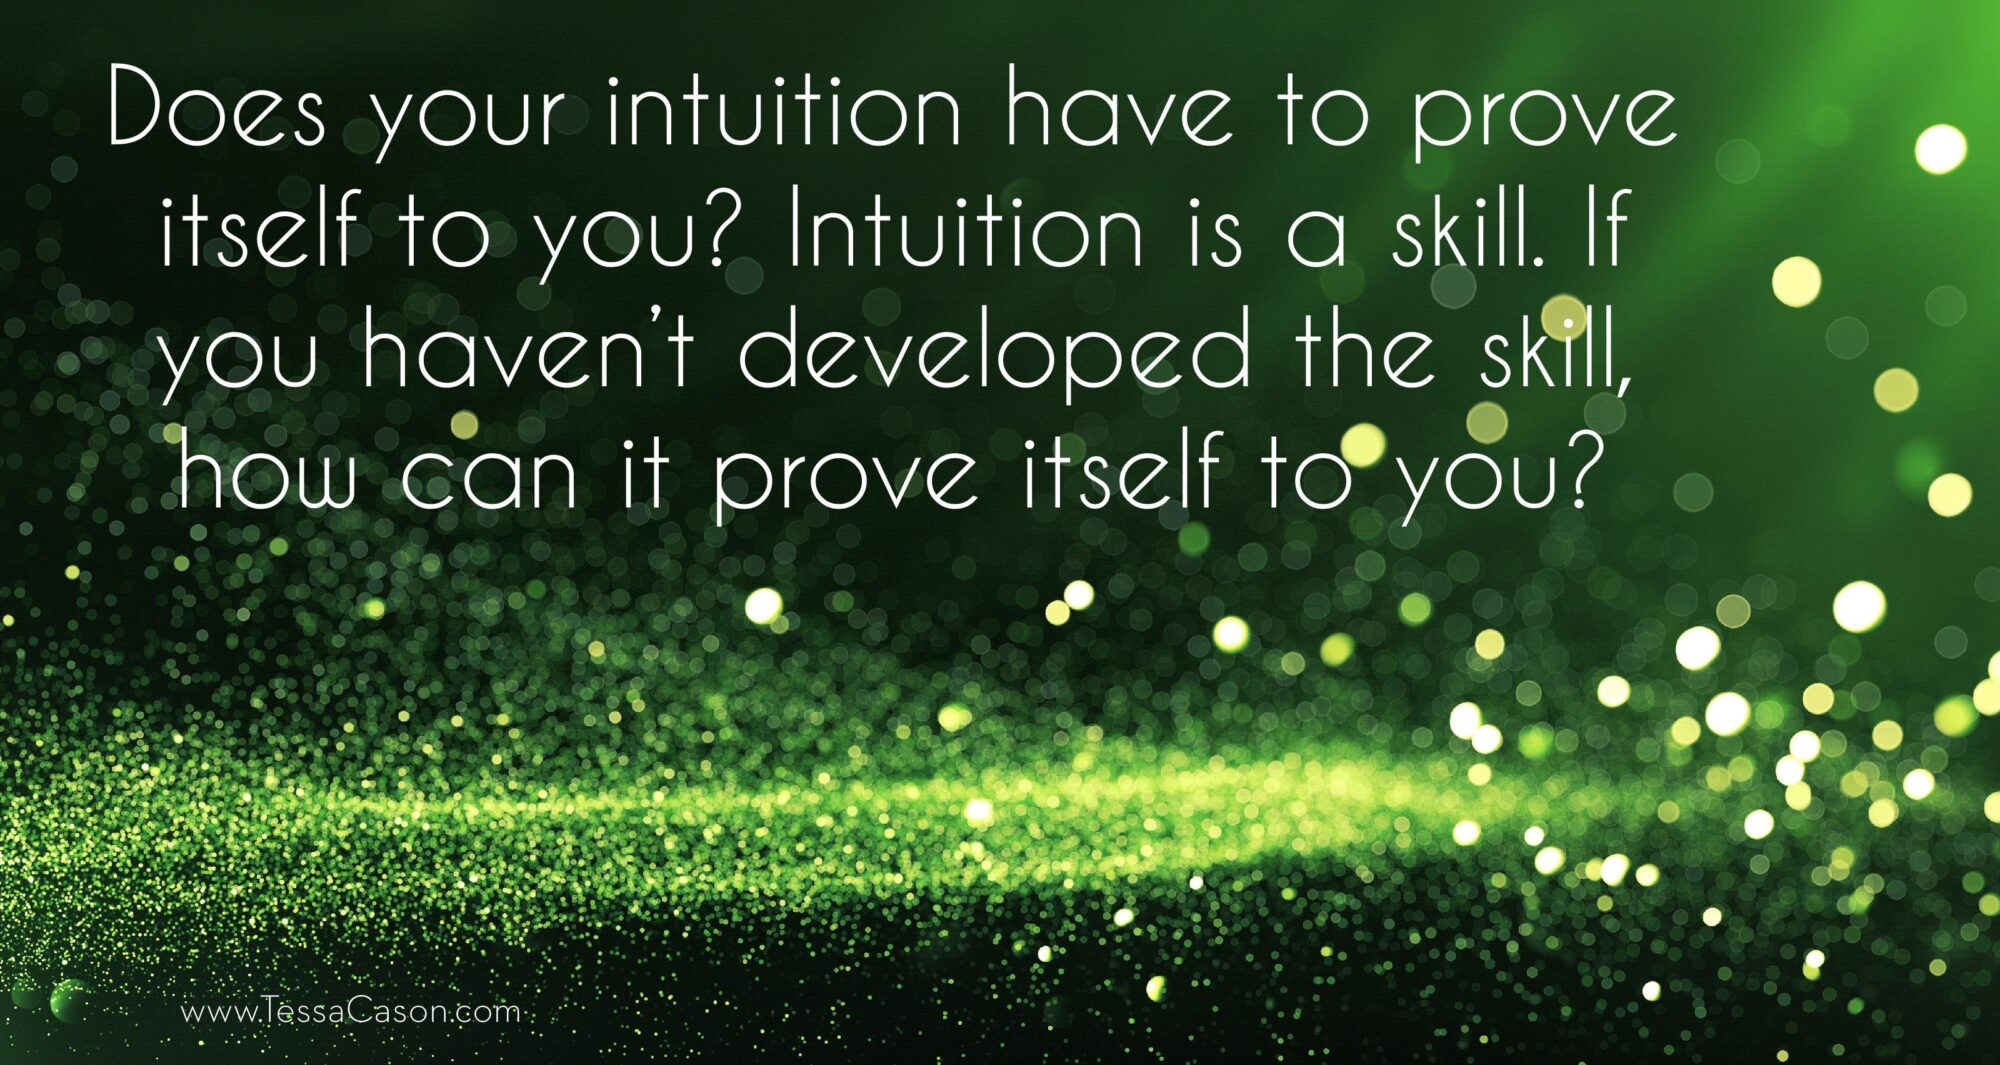 Does your intuition have to prove it self to you